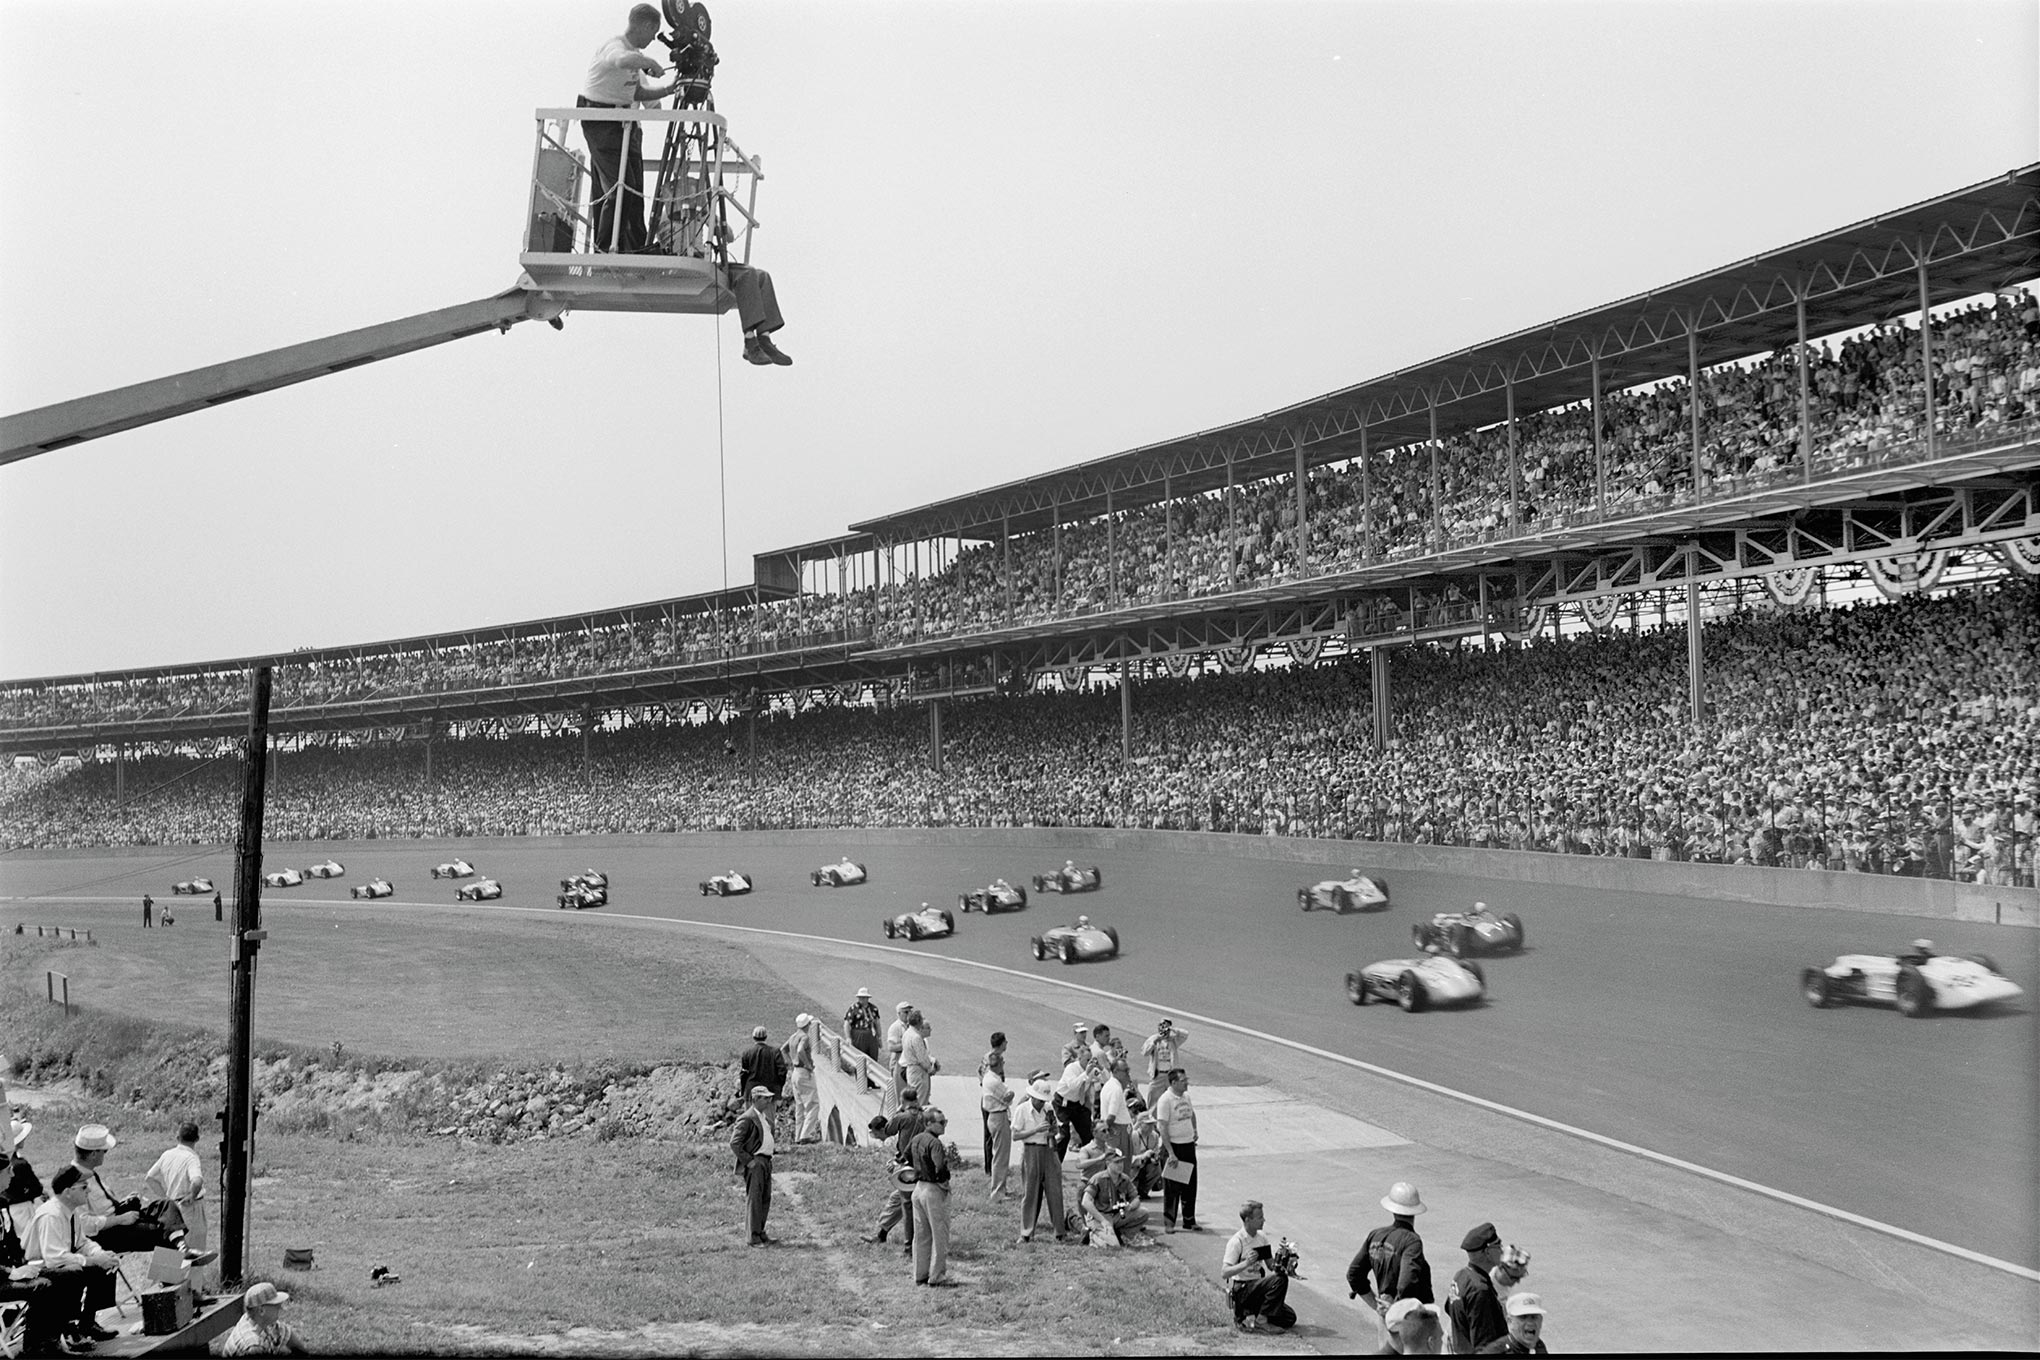 """Indy's 135.601-mph race average was fully 5 mph faster than the previous record speed, despite lowered USAC displacement ceilings of 255 cubic inches (down from 274 ci) for unblown engines and just 171 inches, supercharged (previously 183 ci). Meyer-Drake Offys powered 50 of 54 entries and all but two of the 31 starters. """"Chances of the Offy being replaced as king of the race engines don't appear anywhere in sight,"""" wrote Ray Brock in HRM's Aug. '57 event coverage."""